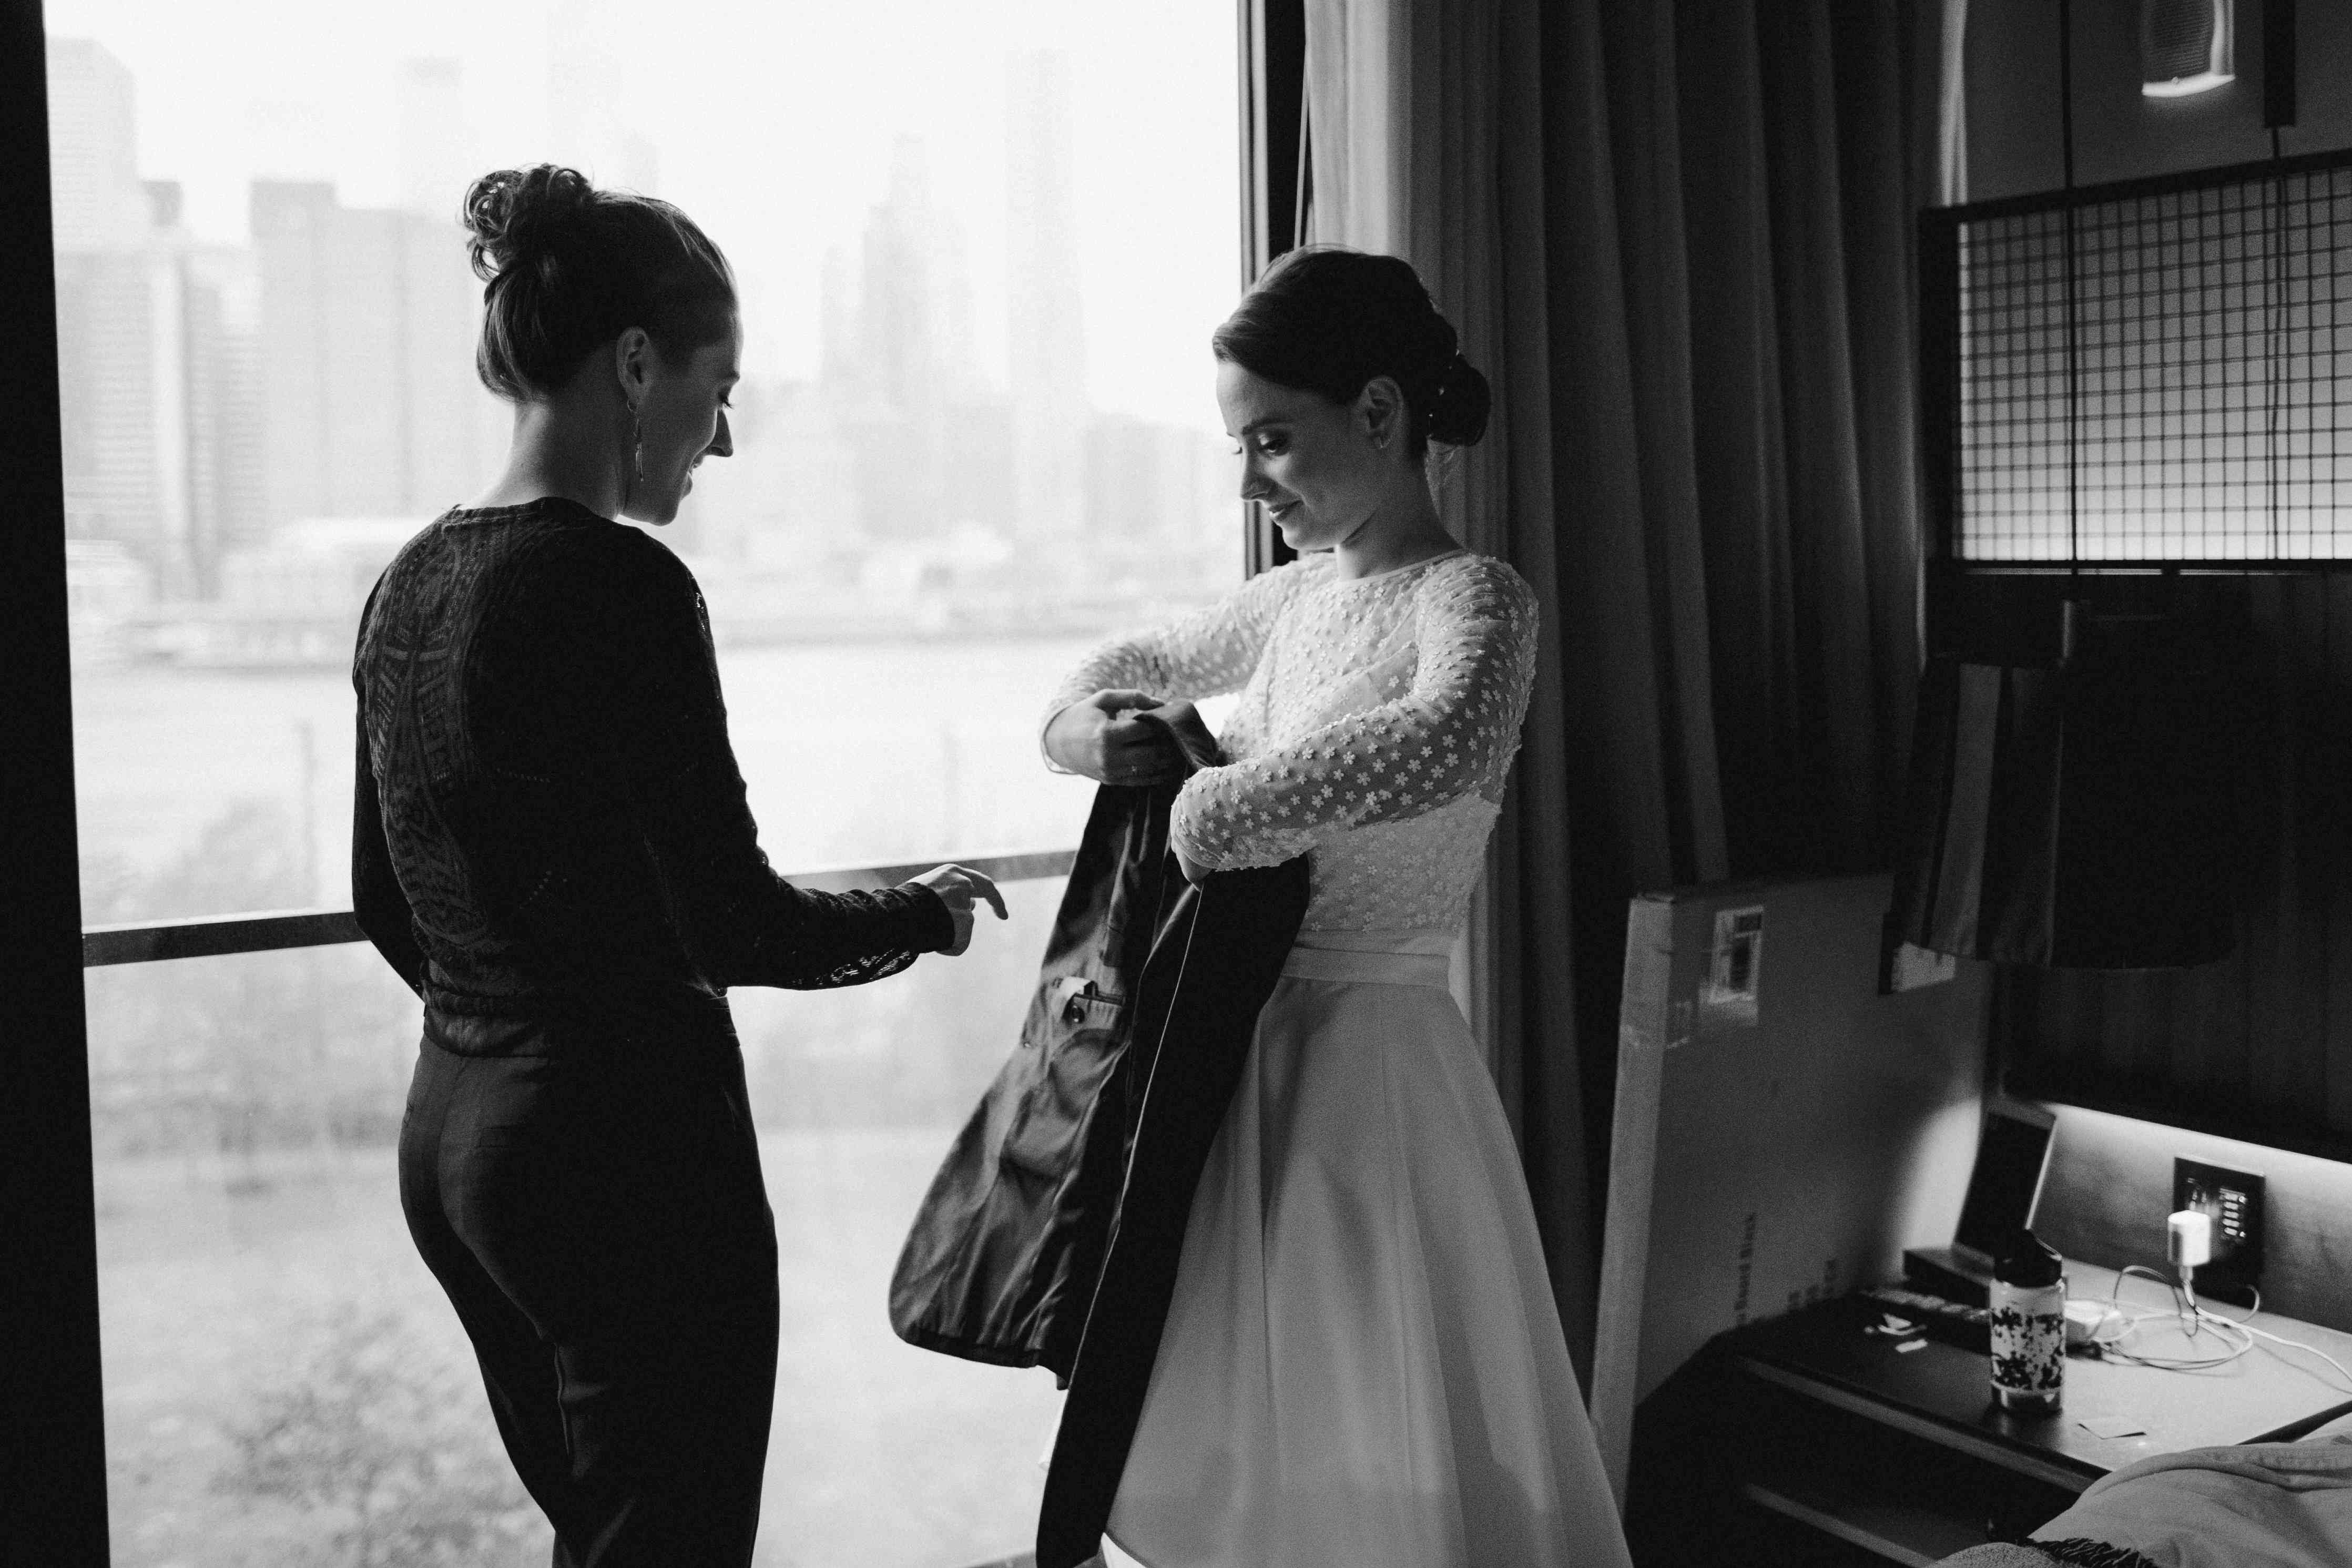 The brides get ready before the ceremony